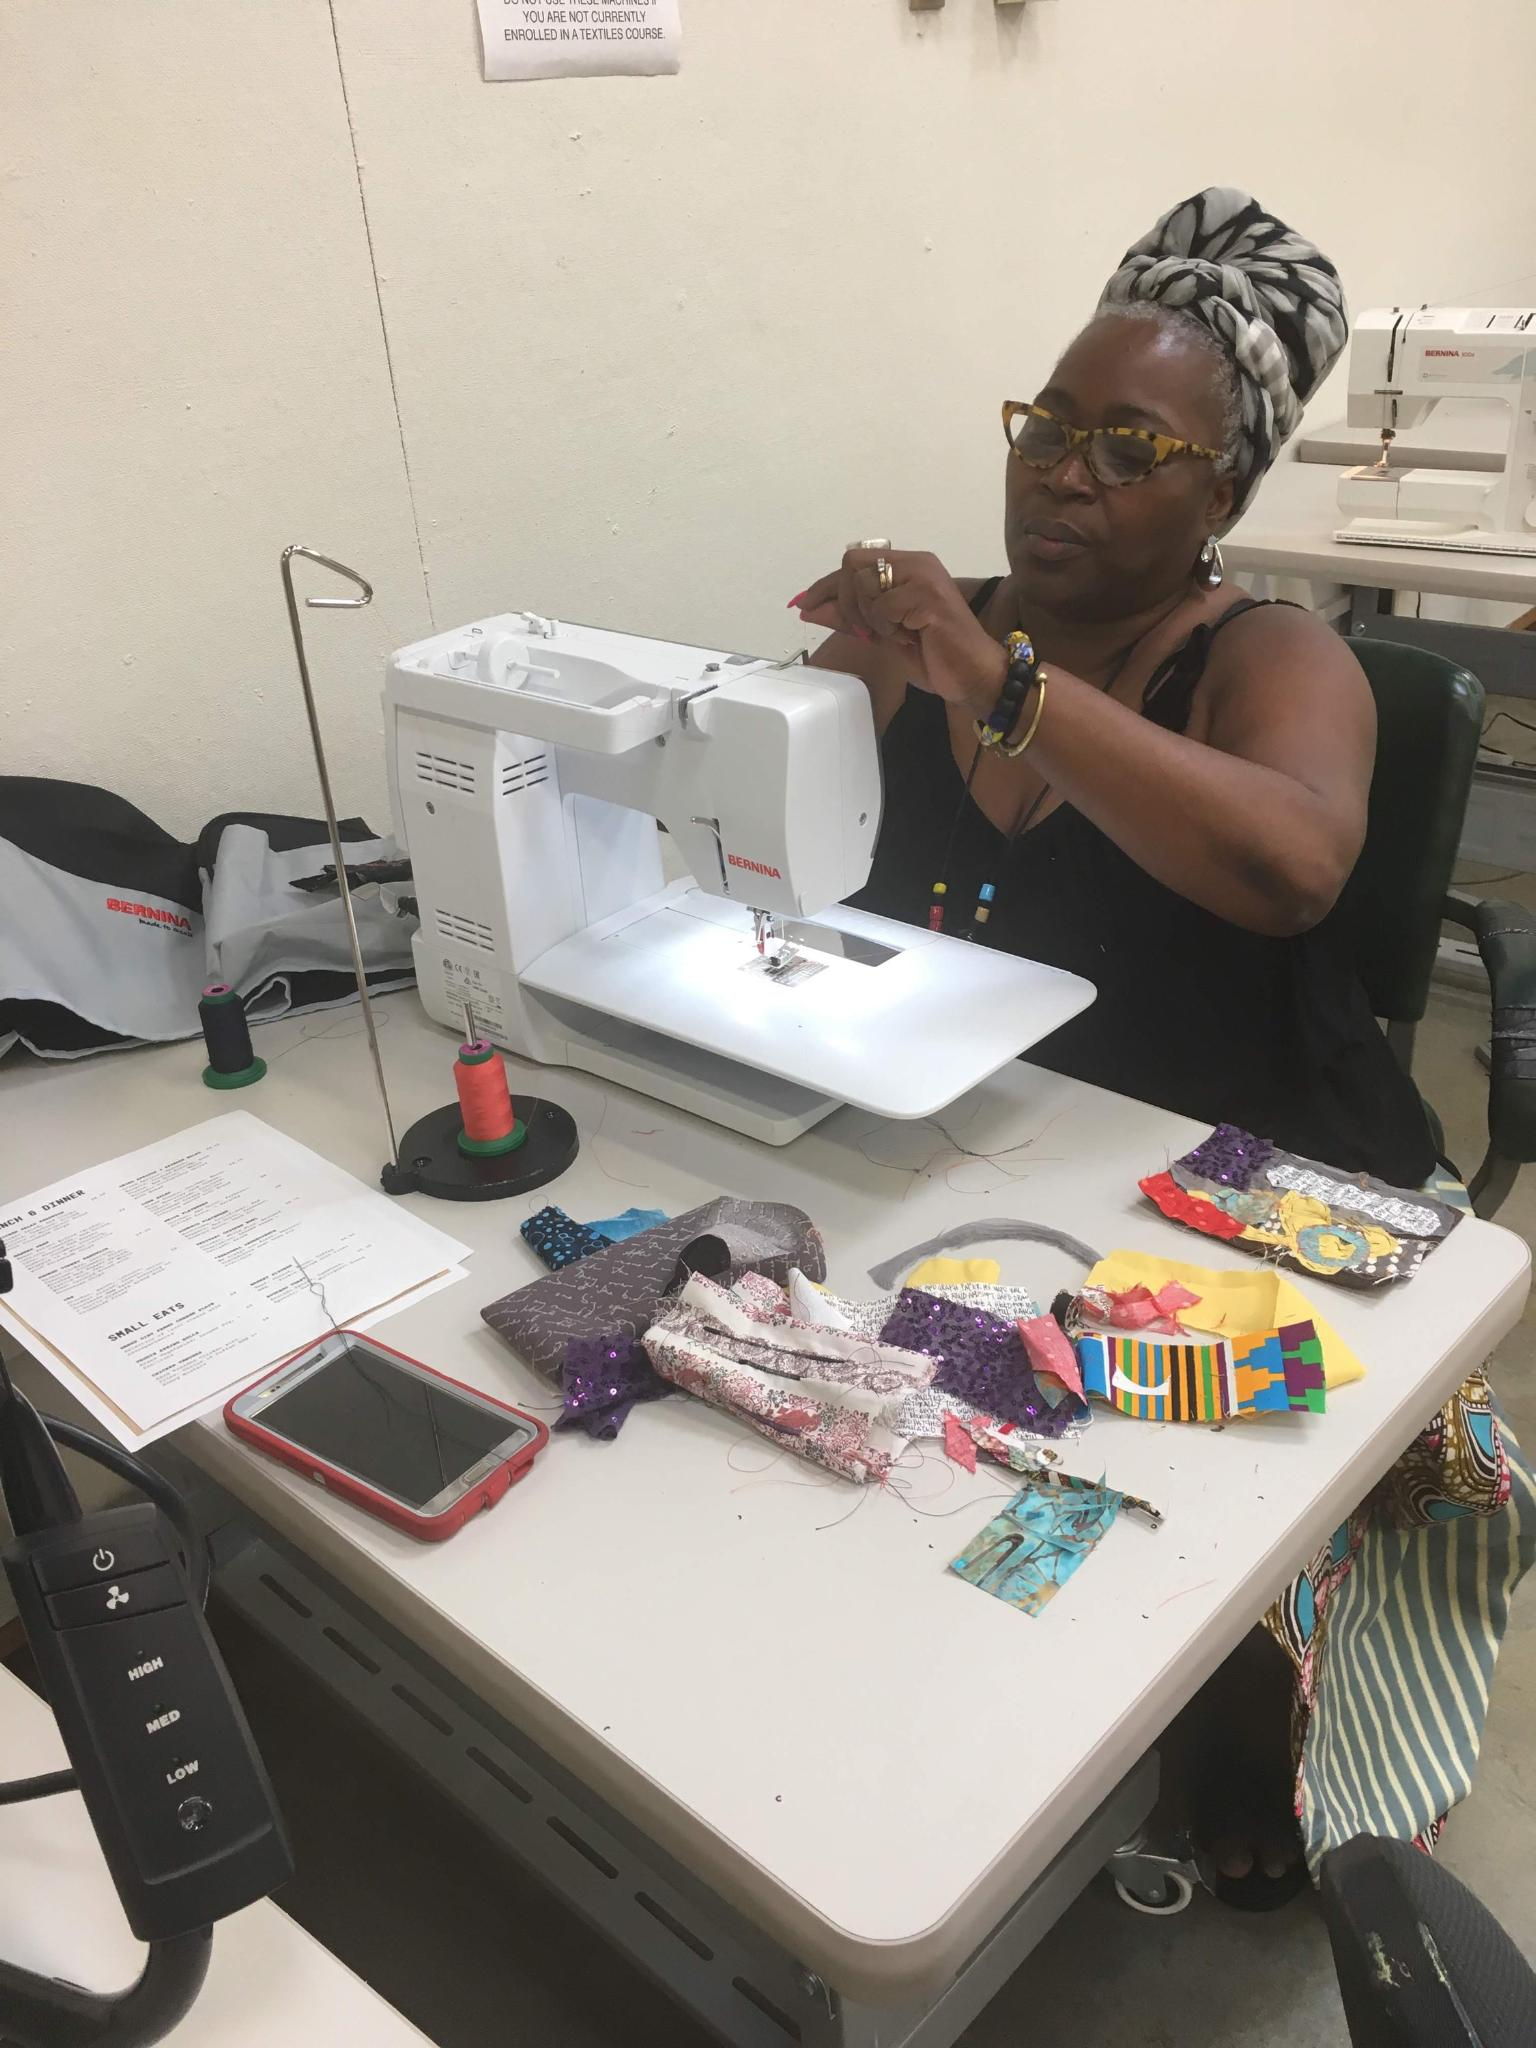 A woman sits behind a sewing machine making adjustments